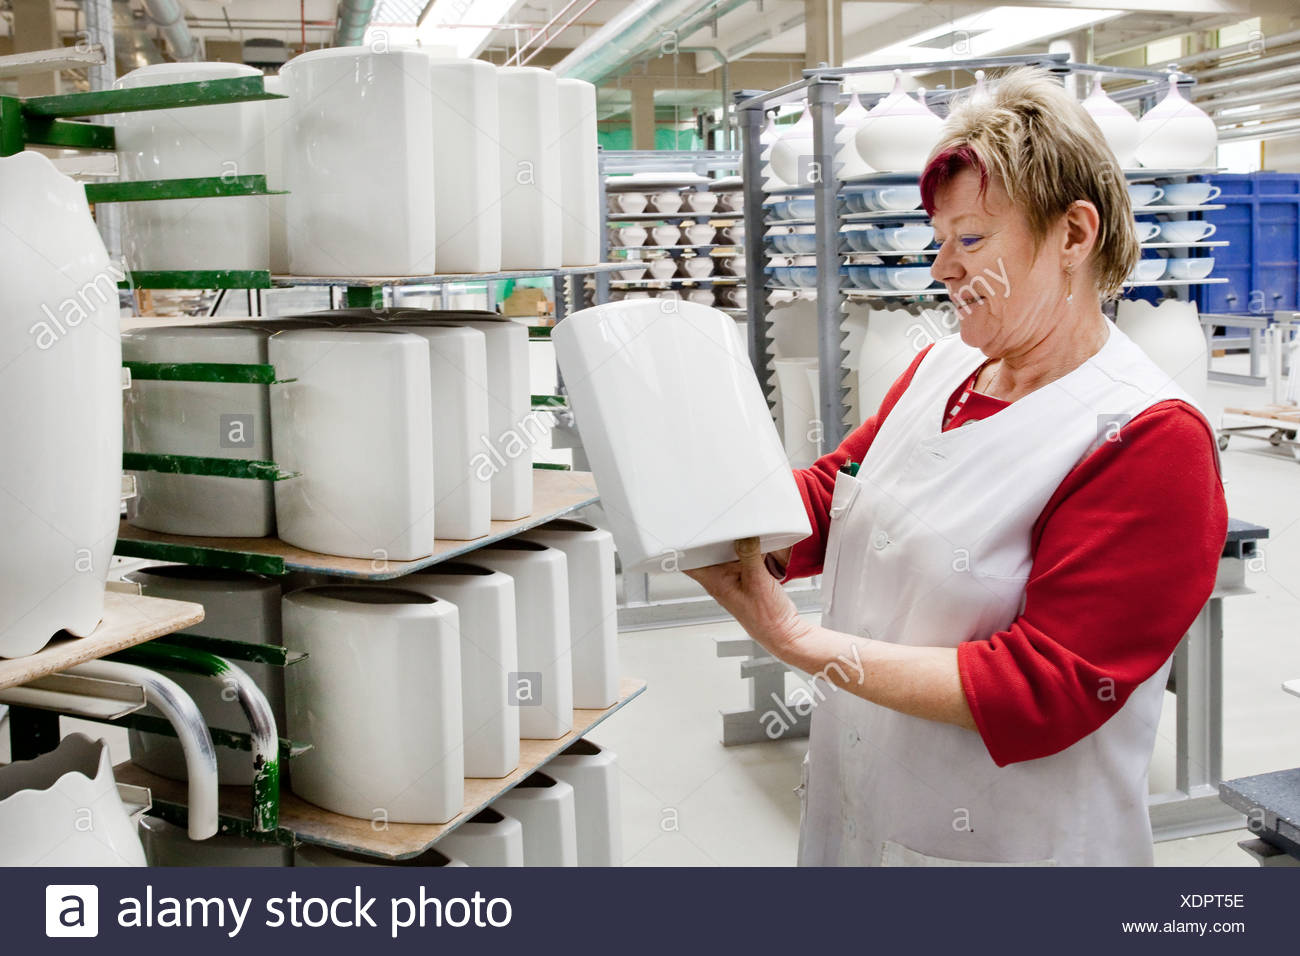 Employee during the final inspection of Rosenthal vases, in the production of tableware at the porcelain manufacturer Rosenthal - Stock Image